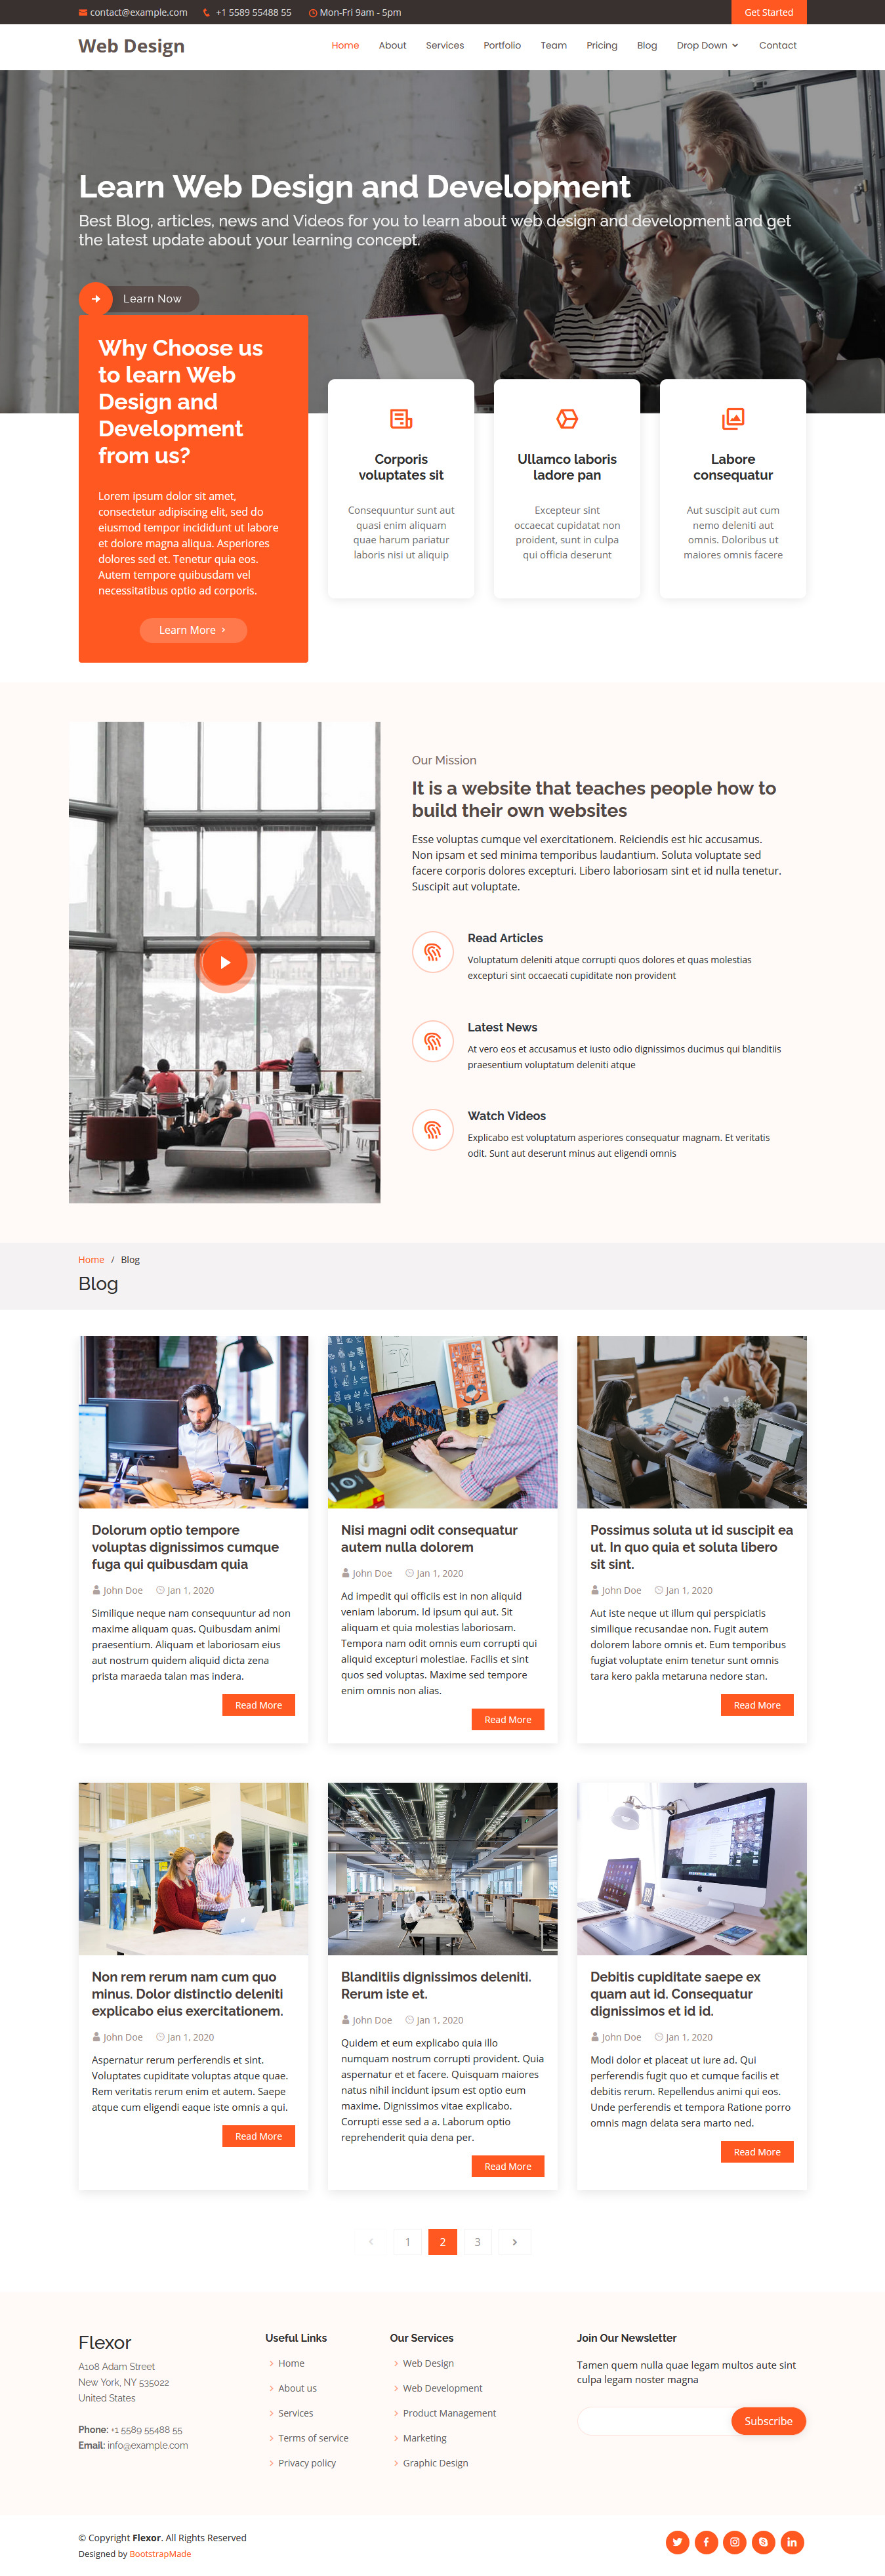 Wordpress Website Create, build or customize with Highly optimized theme